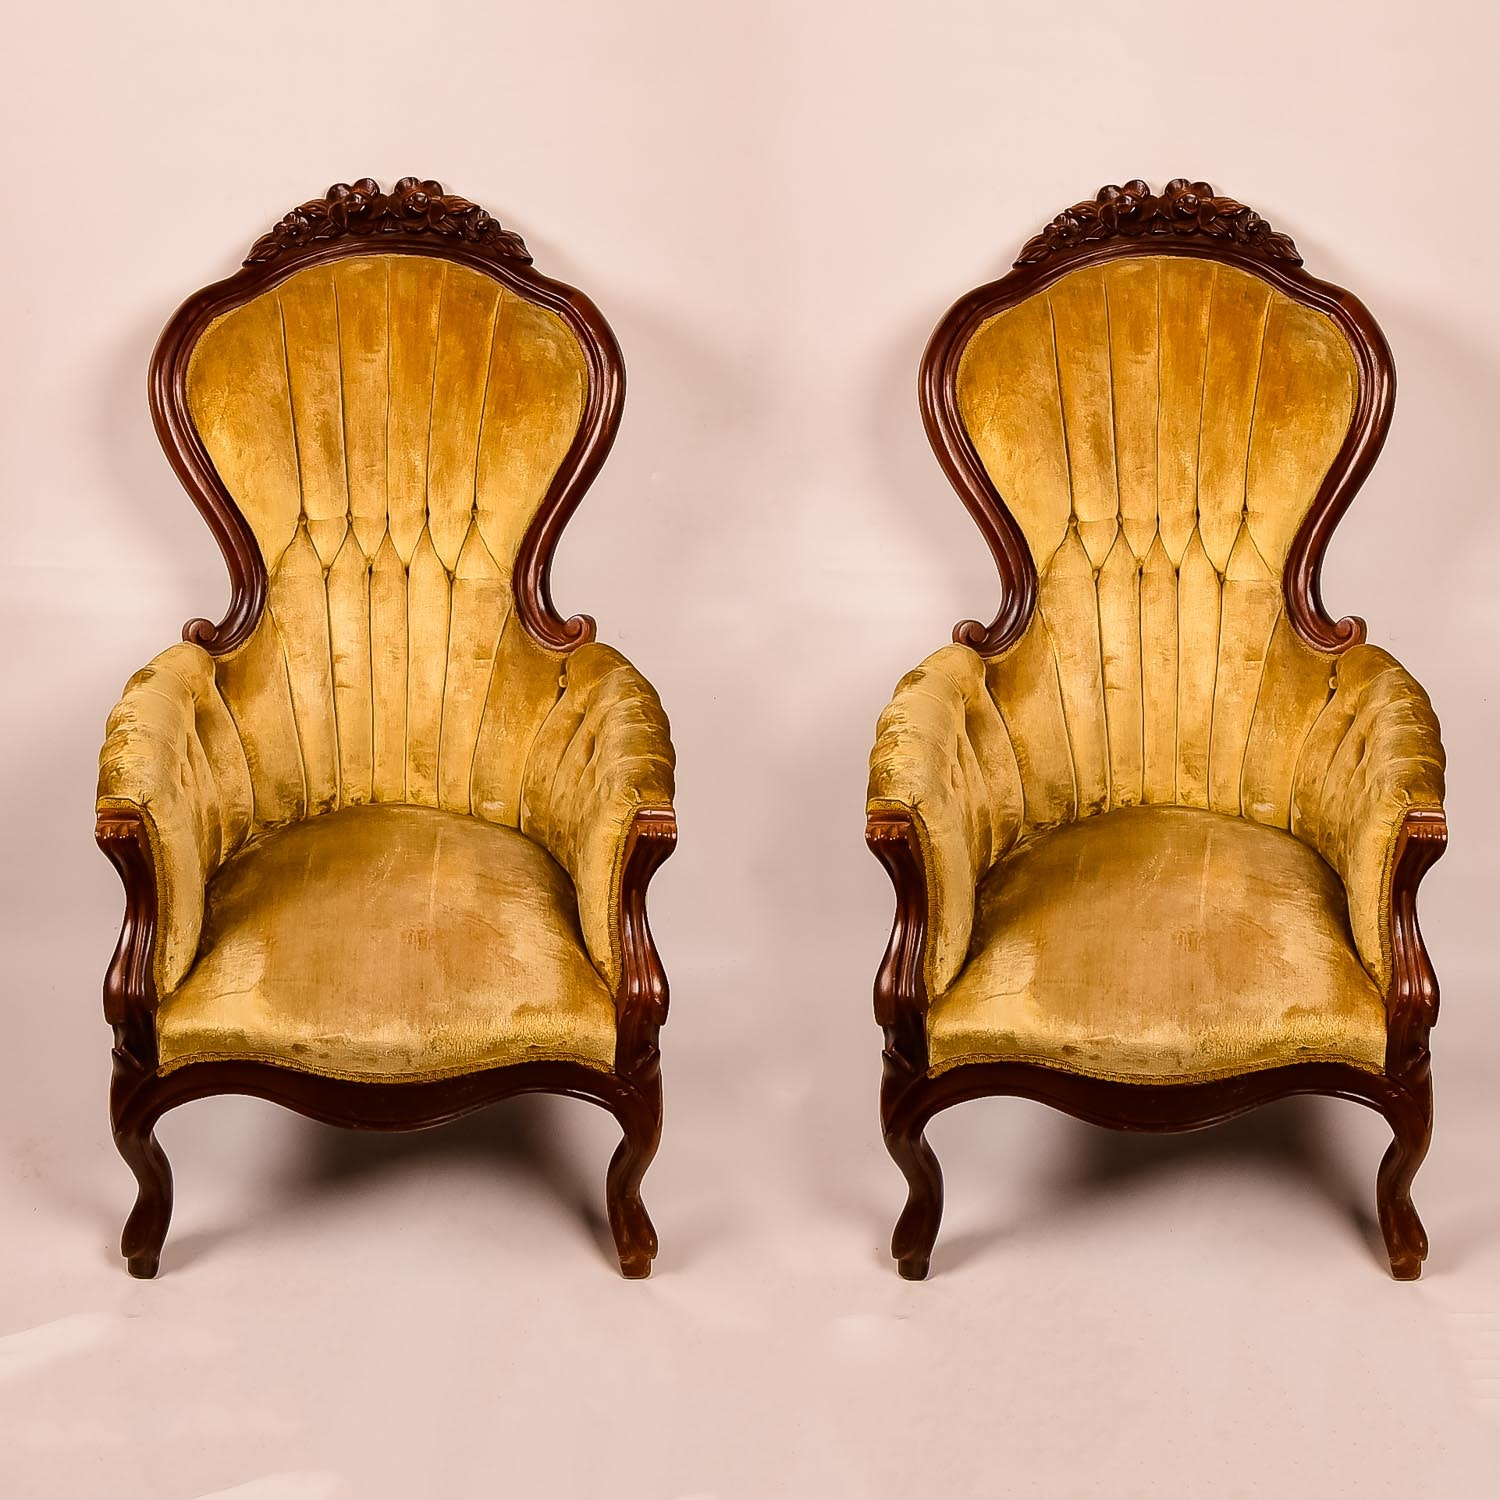 Pair of Velvet and Wood Carved Chairs